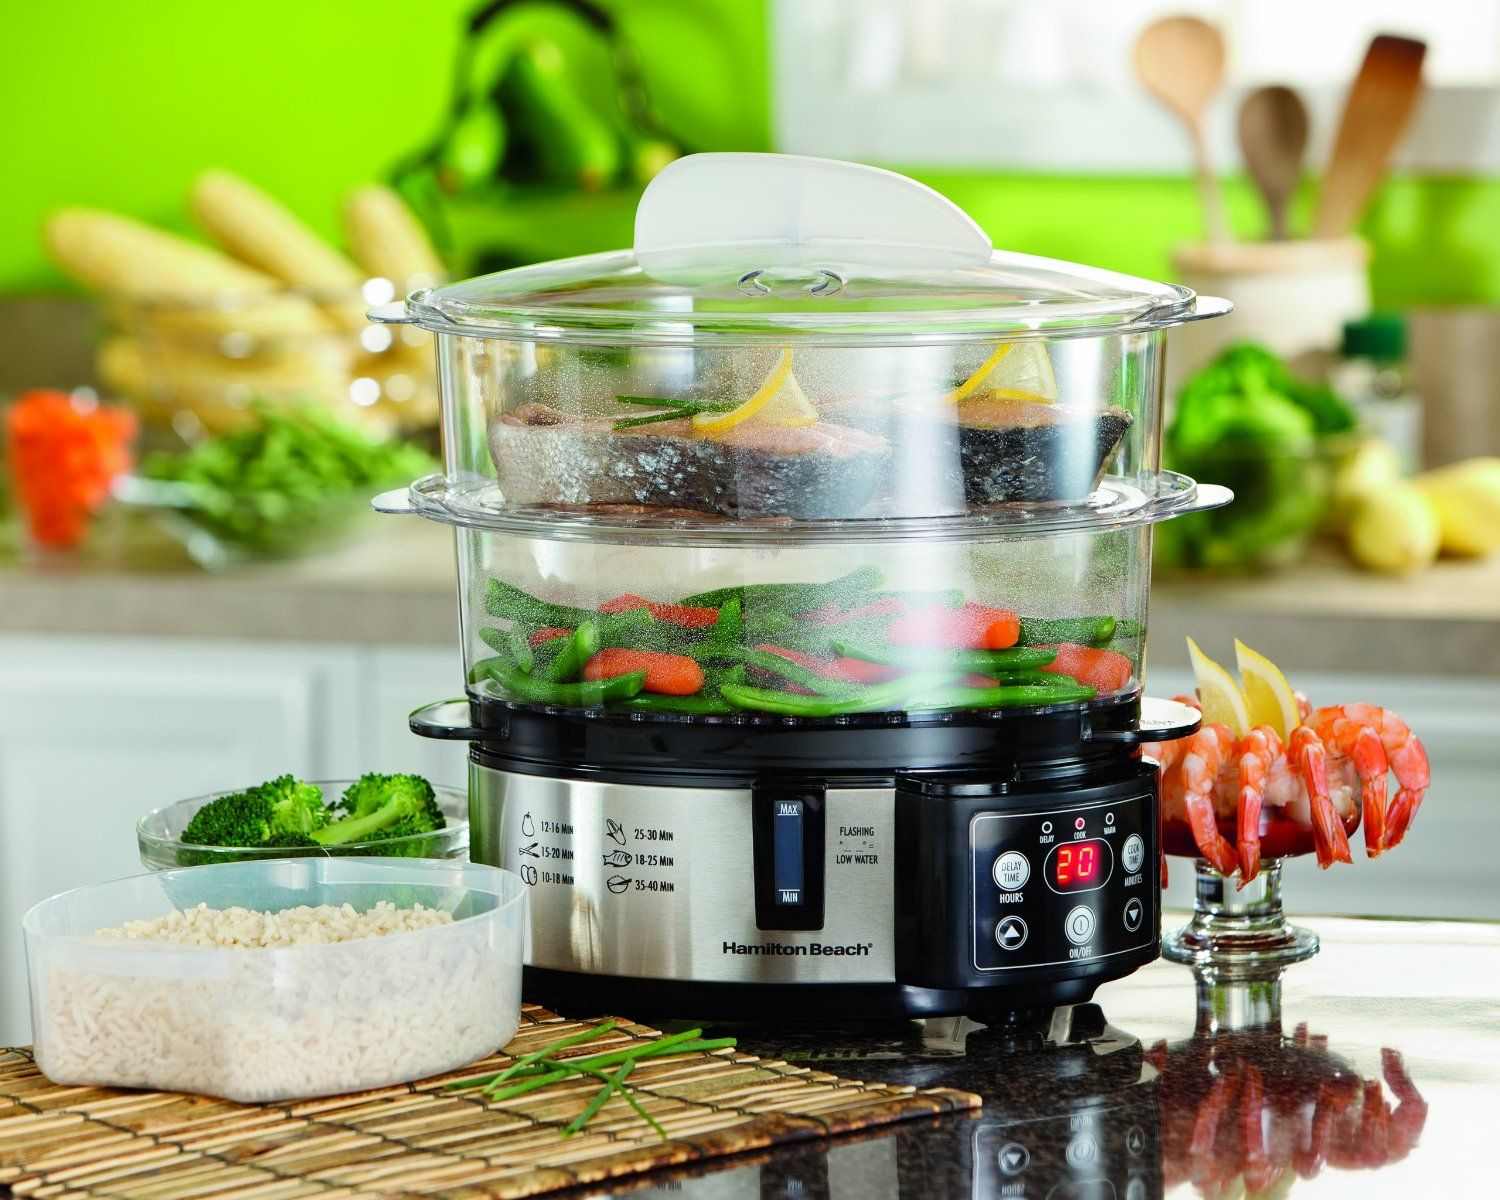 Hamilton Beach electric steamer allows you to steam vegetables as a side  dish in 1 tier while fish cooks on other tier. Steamed gr… | Steamer  recipes, Food, Cooking